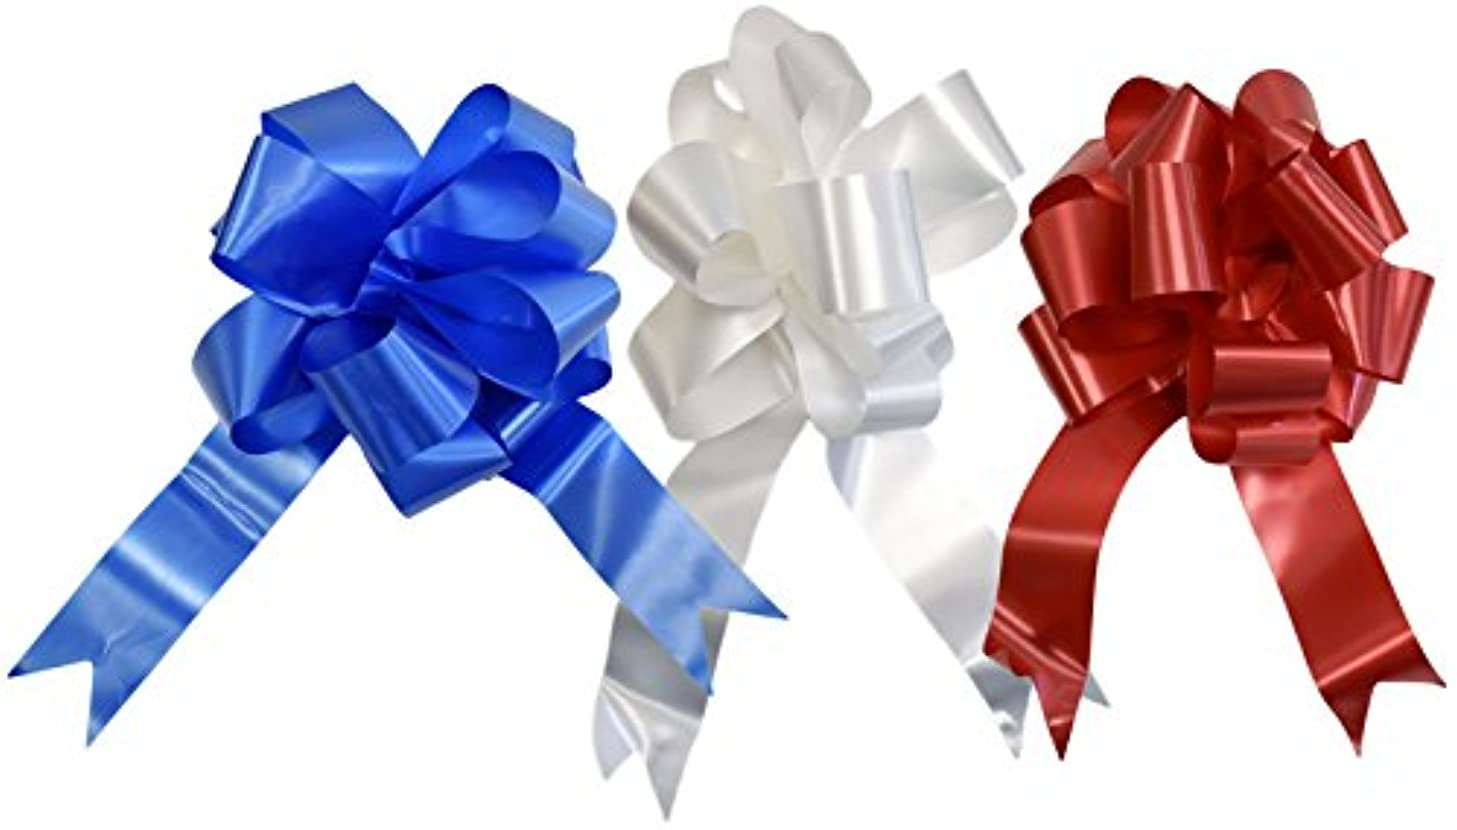 Set of 3 Giant Patriotic Pull Bows! 3 Elegant Colors - Red, White, Blue - 10 Inch Bow - Beautiful Pull Bows Perfect for Decorations for Gifts, Parties, 4th of July, BBQ's, and More! (3)